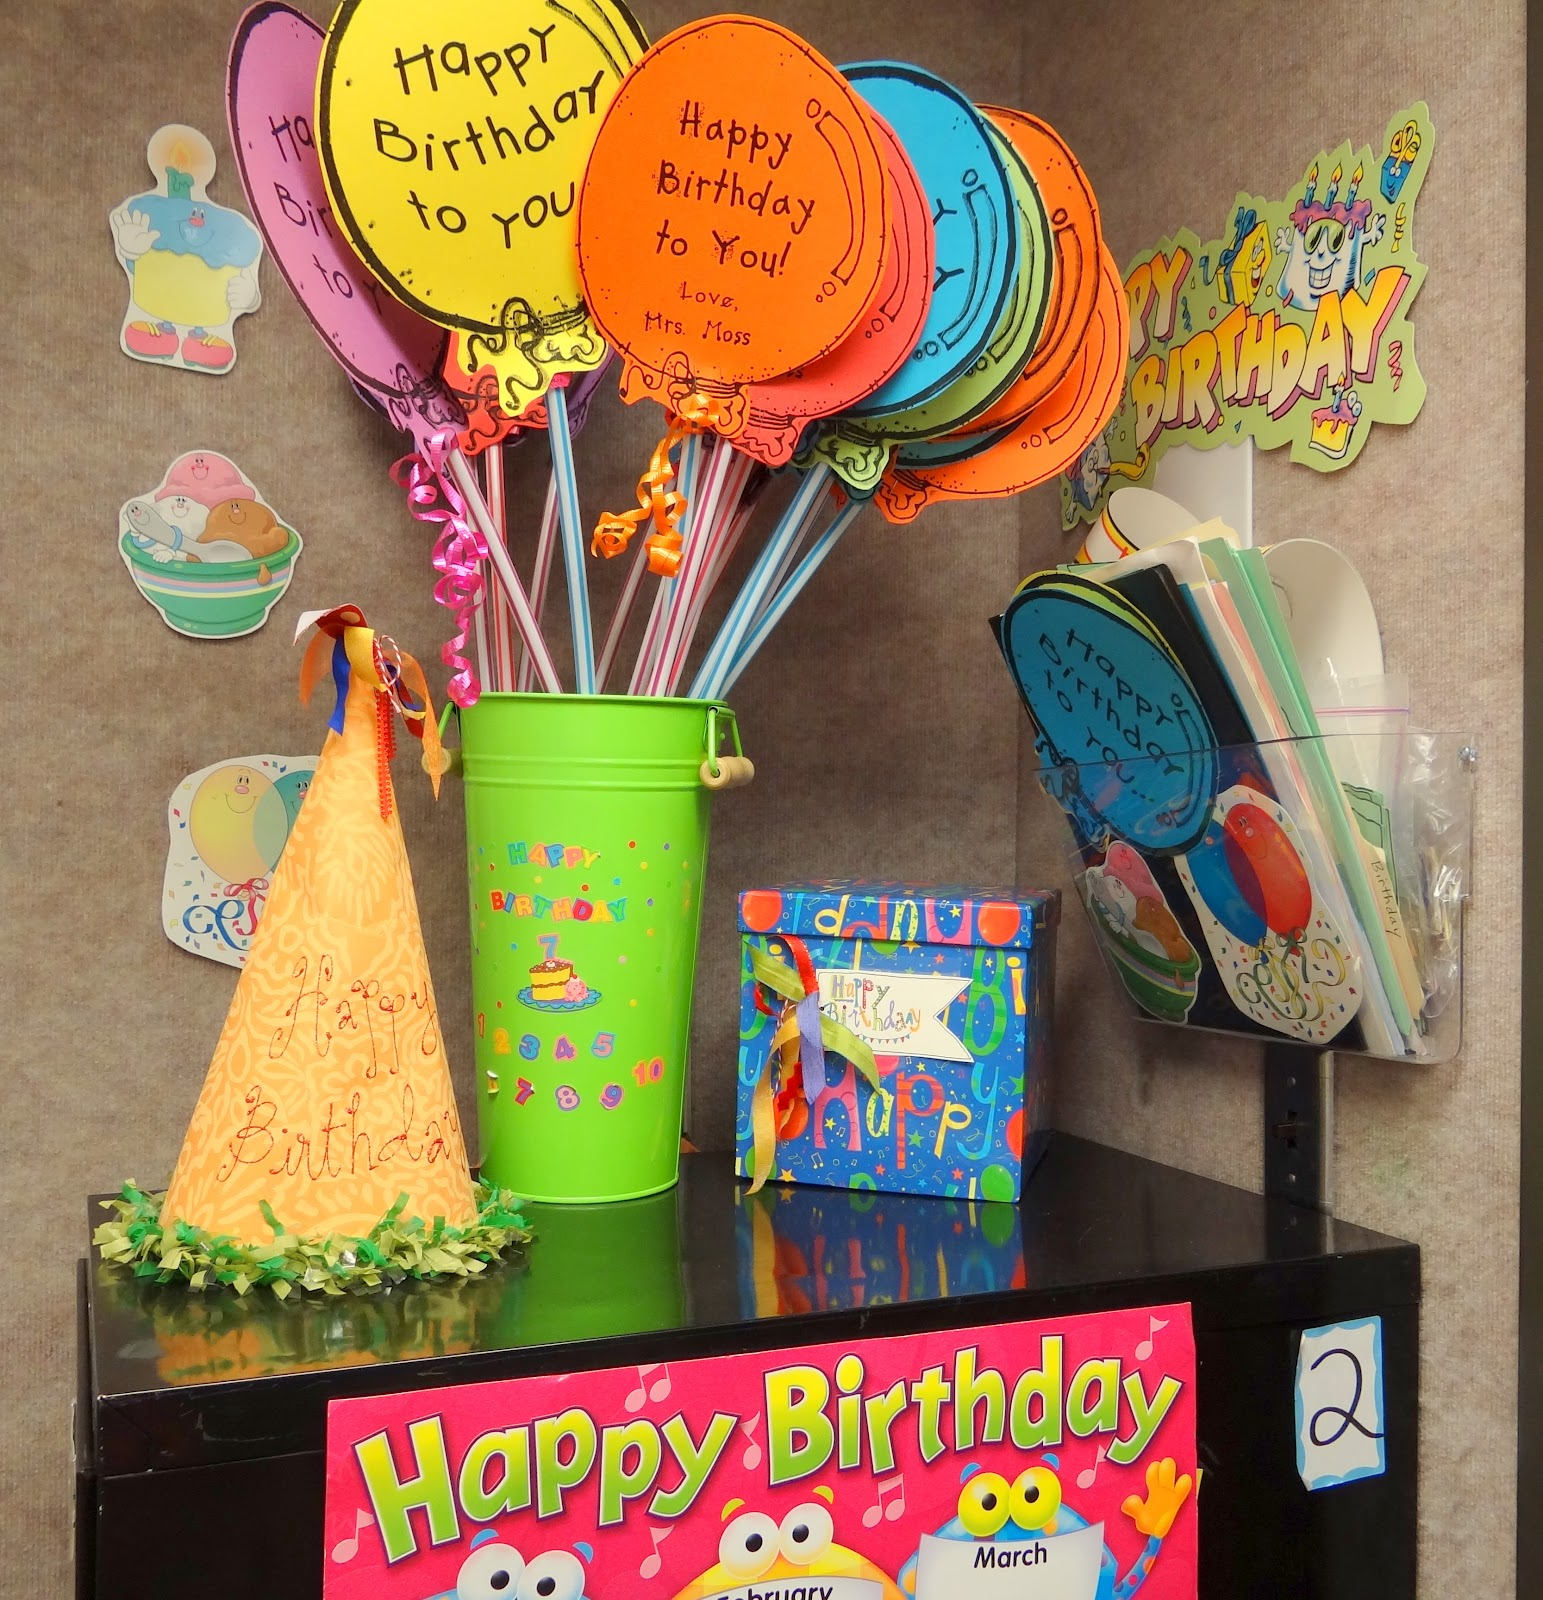 PATTIES CLASSROOM: What Are YOUR Birthday Gift Ideas For